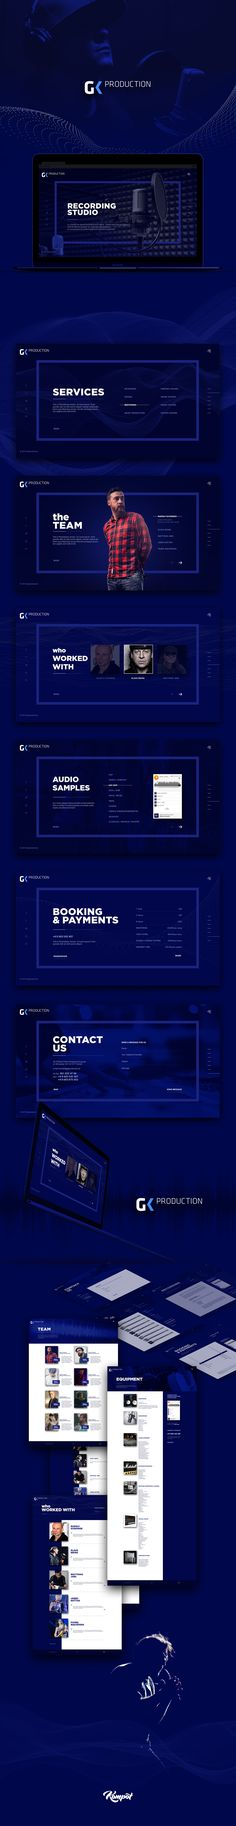 GKProductions on Behance